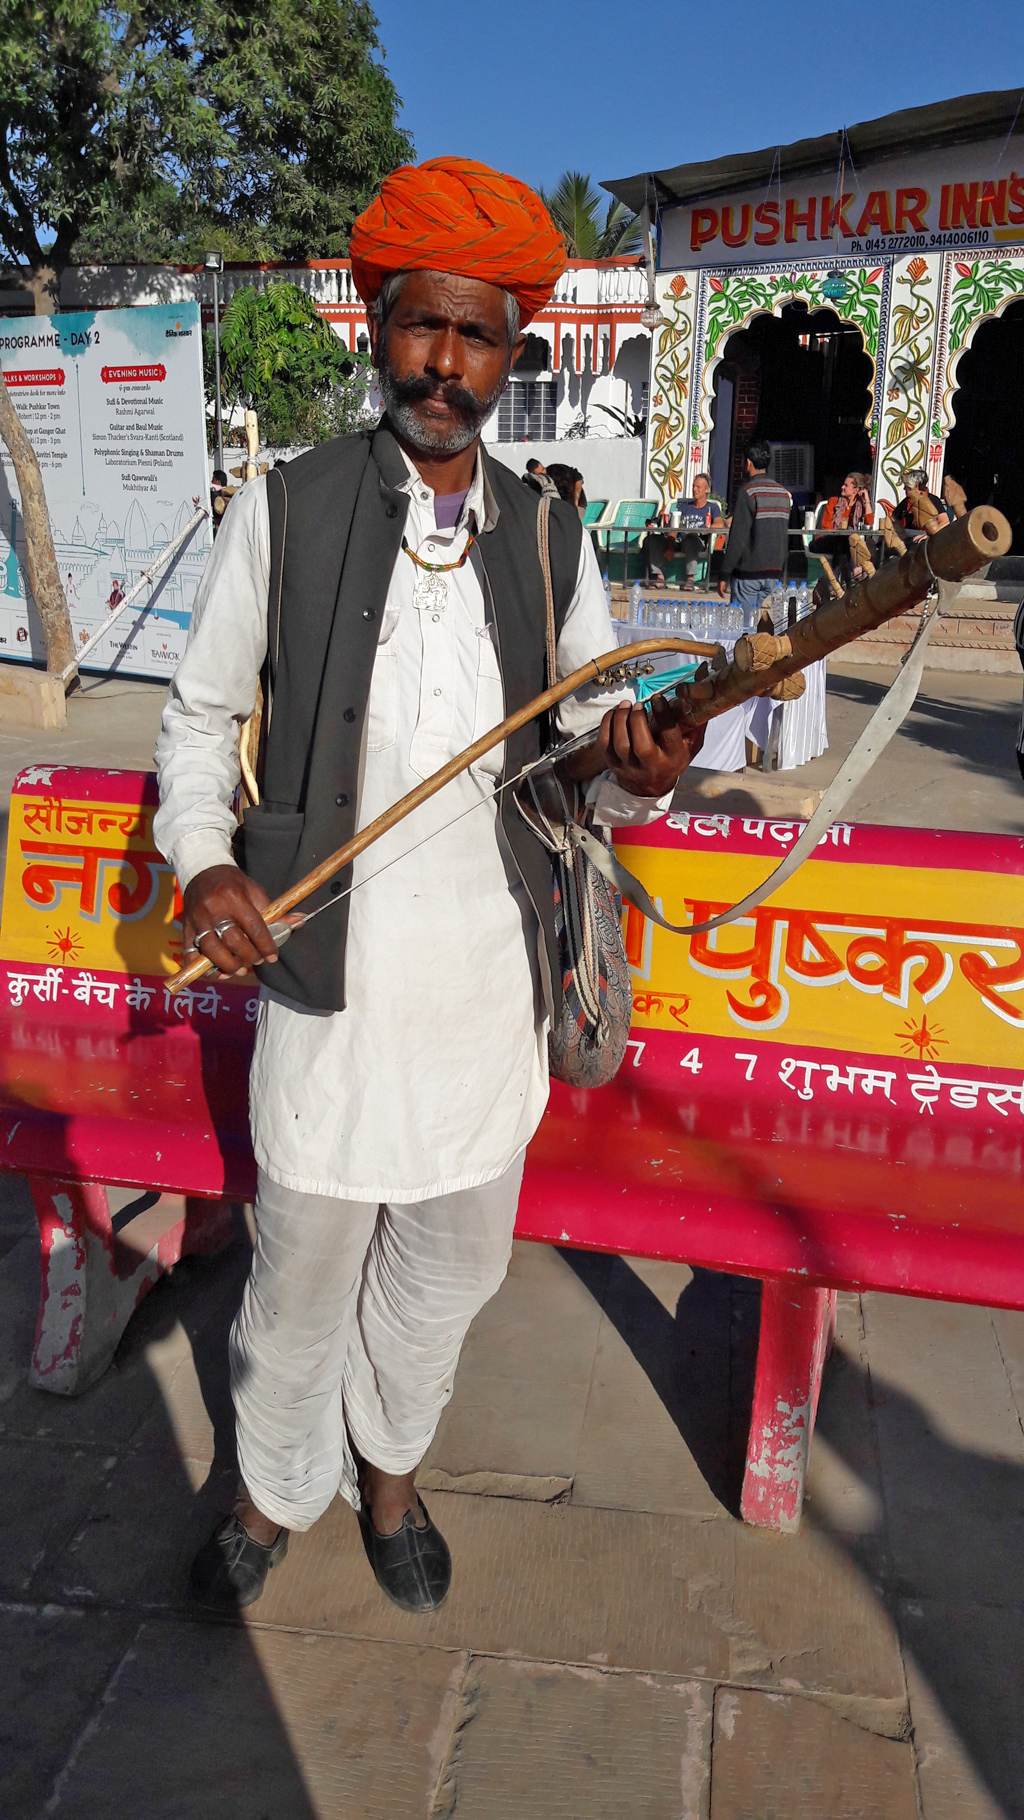 A traditional Rajasthani musician shows off his ravanahatha—an ancient stringed instrument